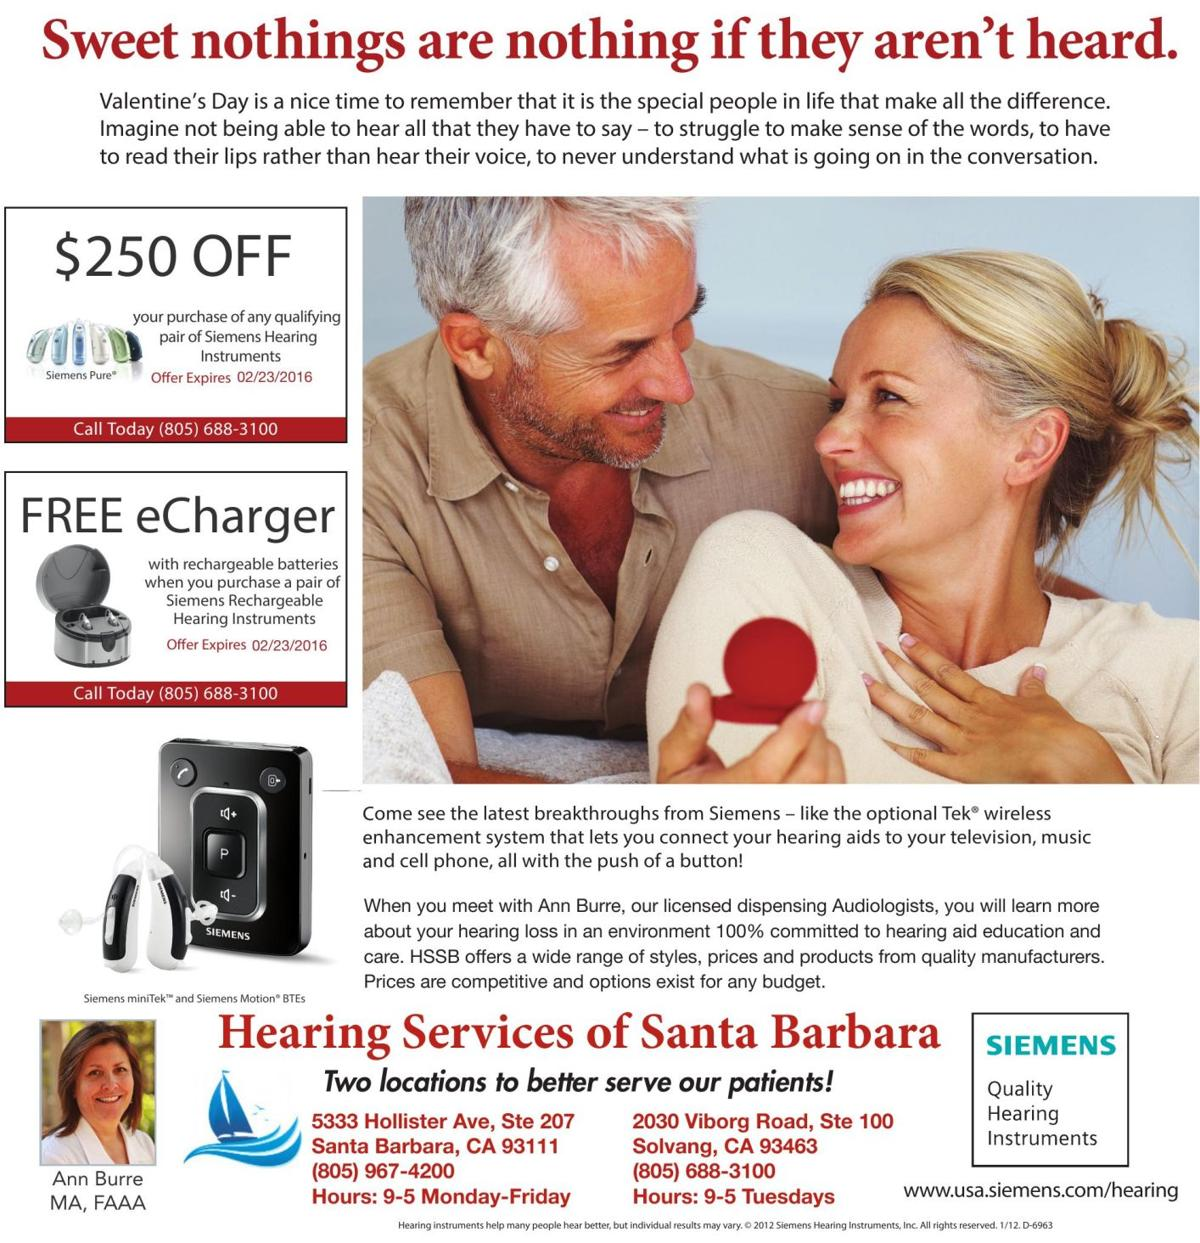 Hearing Services of Santa Barbara